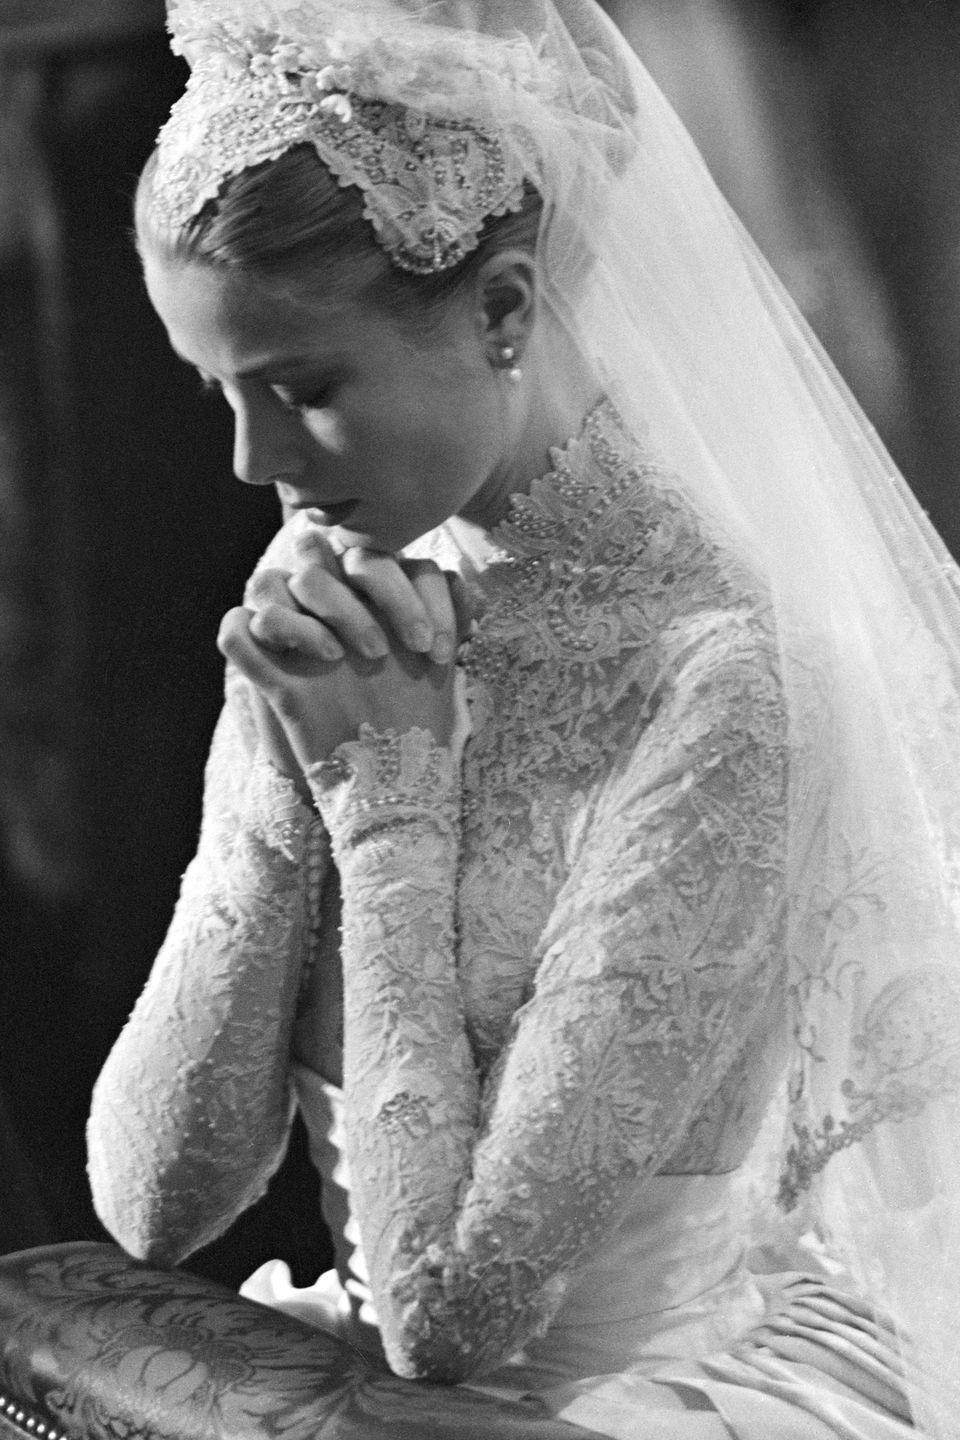 <p>Seamstresses re-embroidered the antique Brussels lace on her bodice to hide any seams and add hundreds of seed pearls.</p>